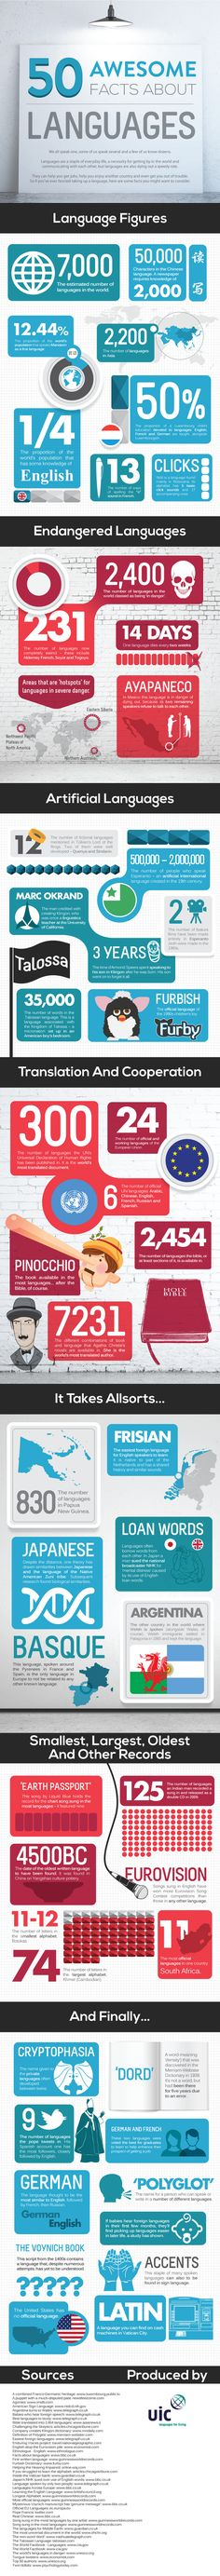 50 Things You Probably Didn't Know About Languages - Edudemic